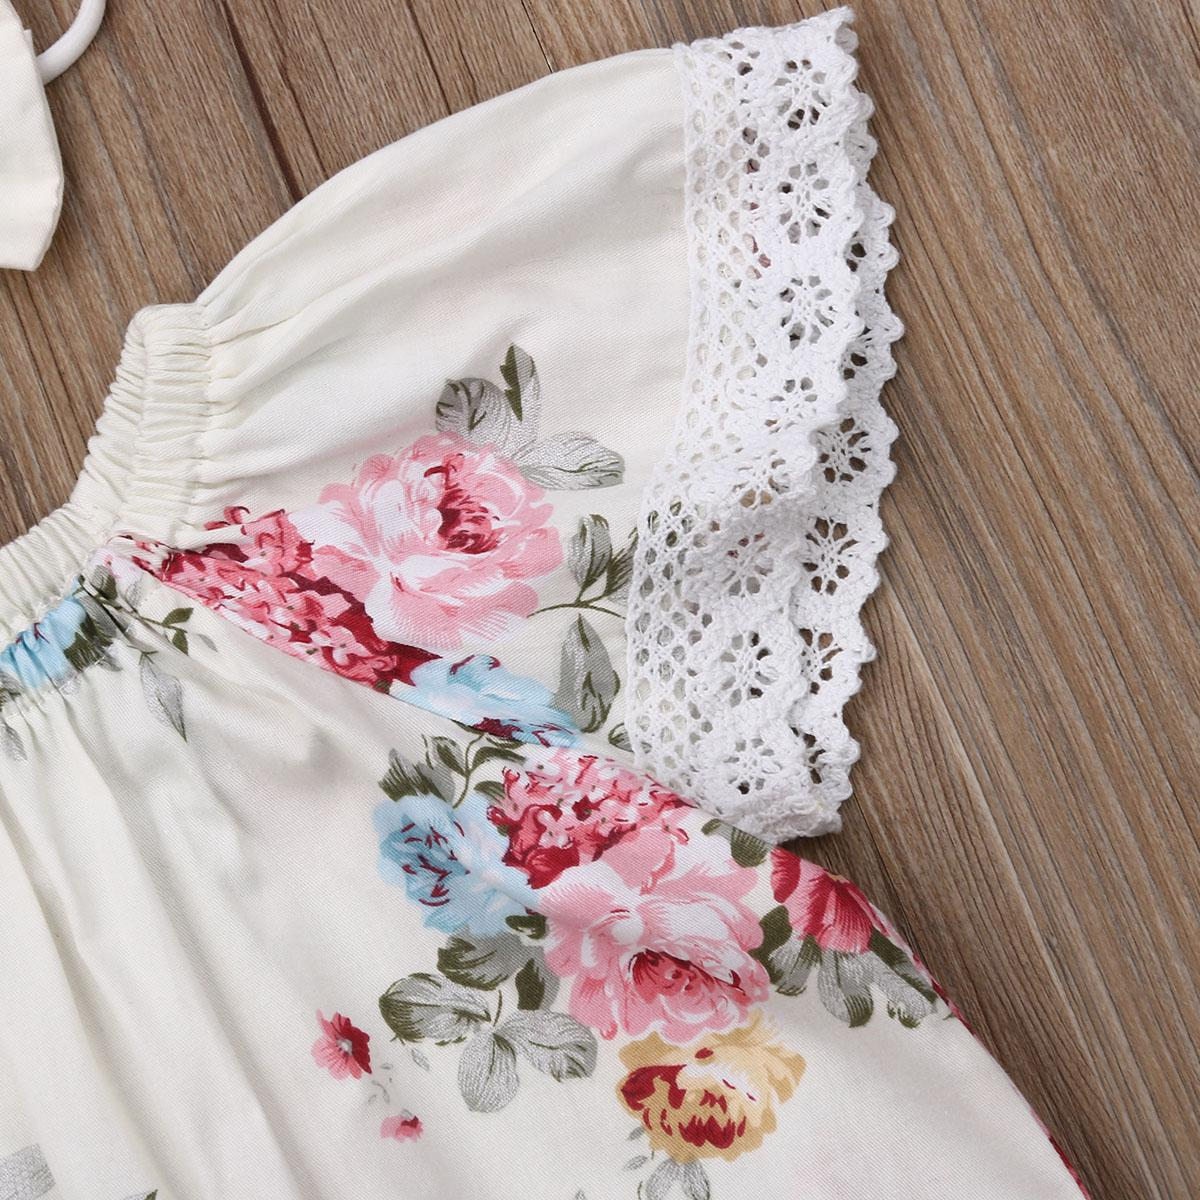 Newborn Baby Girls Bodysuits Outfits Princess Cute Floral Jumpsuits Clothes Headband Sets Infant Little Baby Costumes